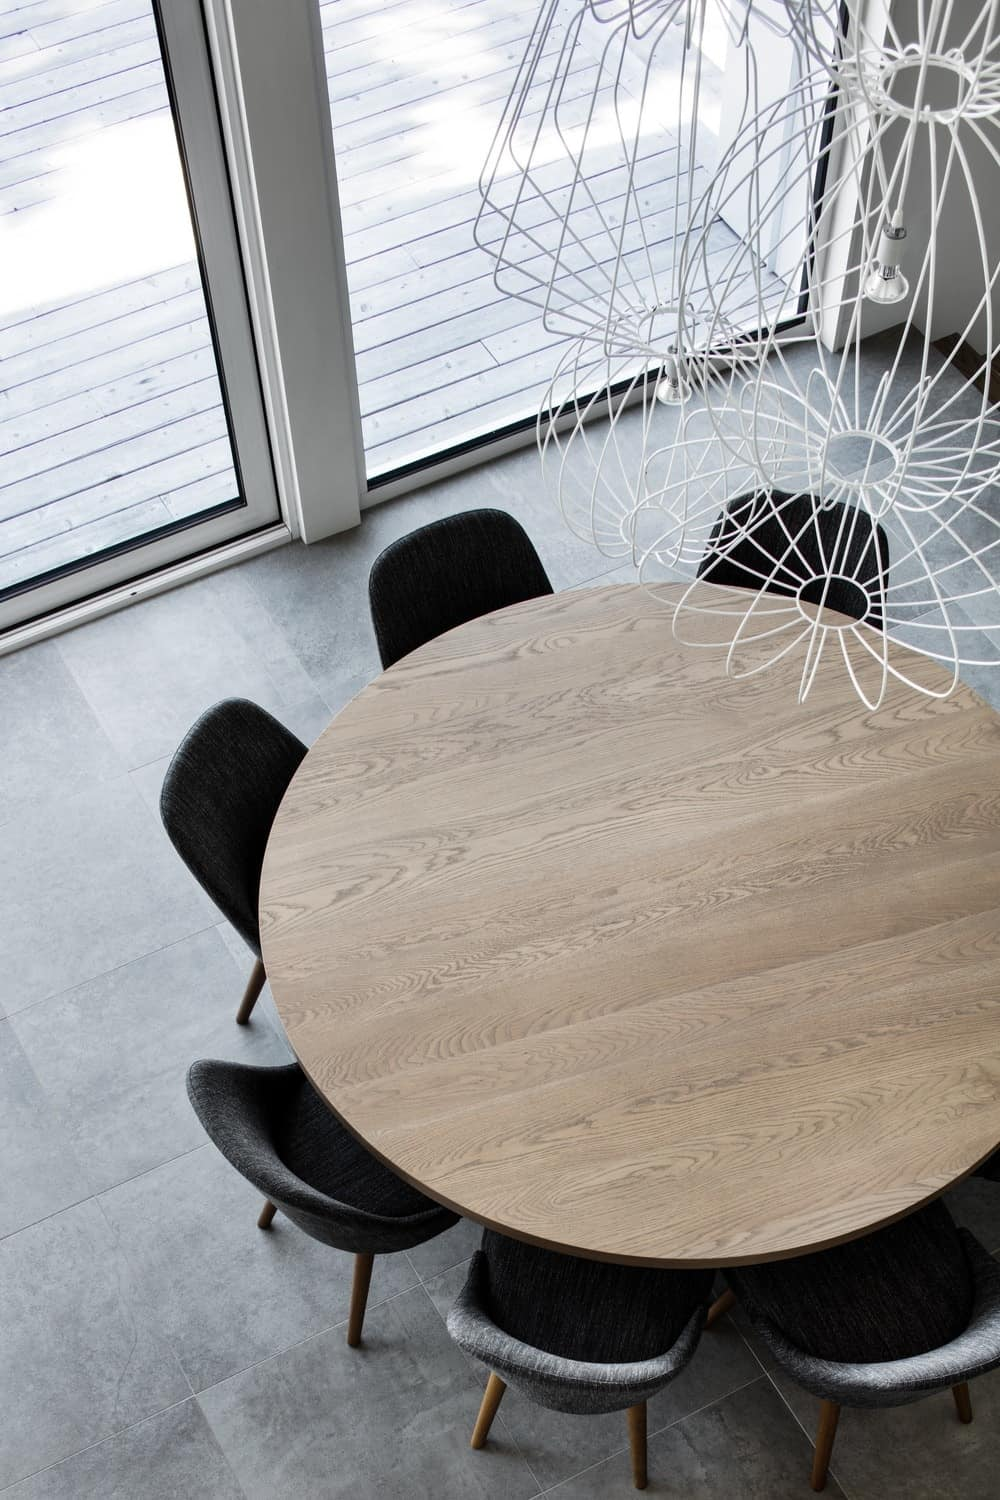 Top view of the dining room focusing on the round wooden table and contemporary chair set. Photo credit: Adrien Williams